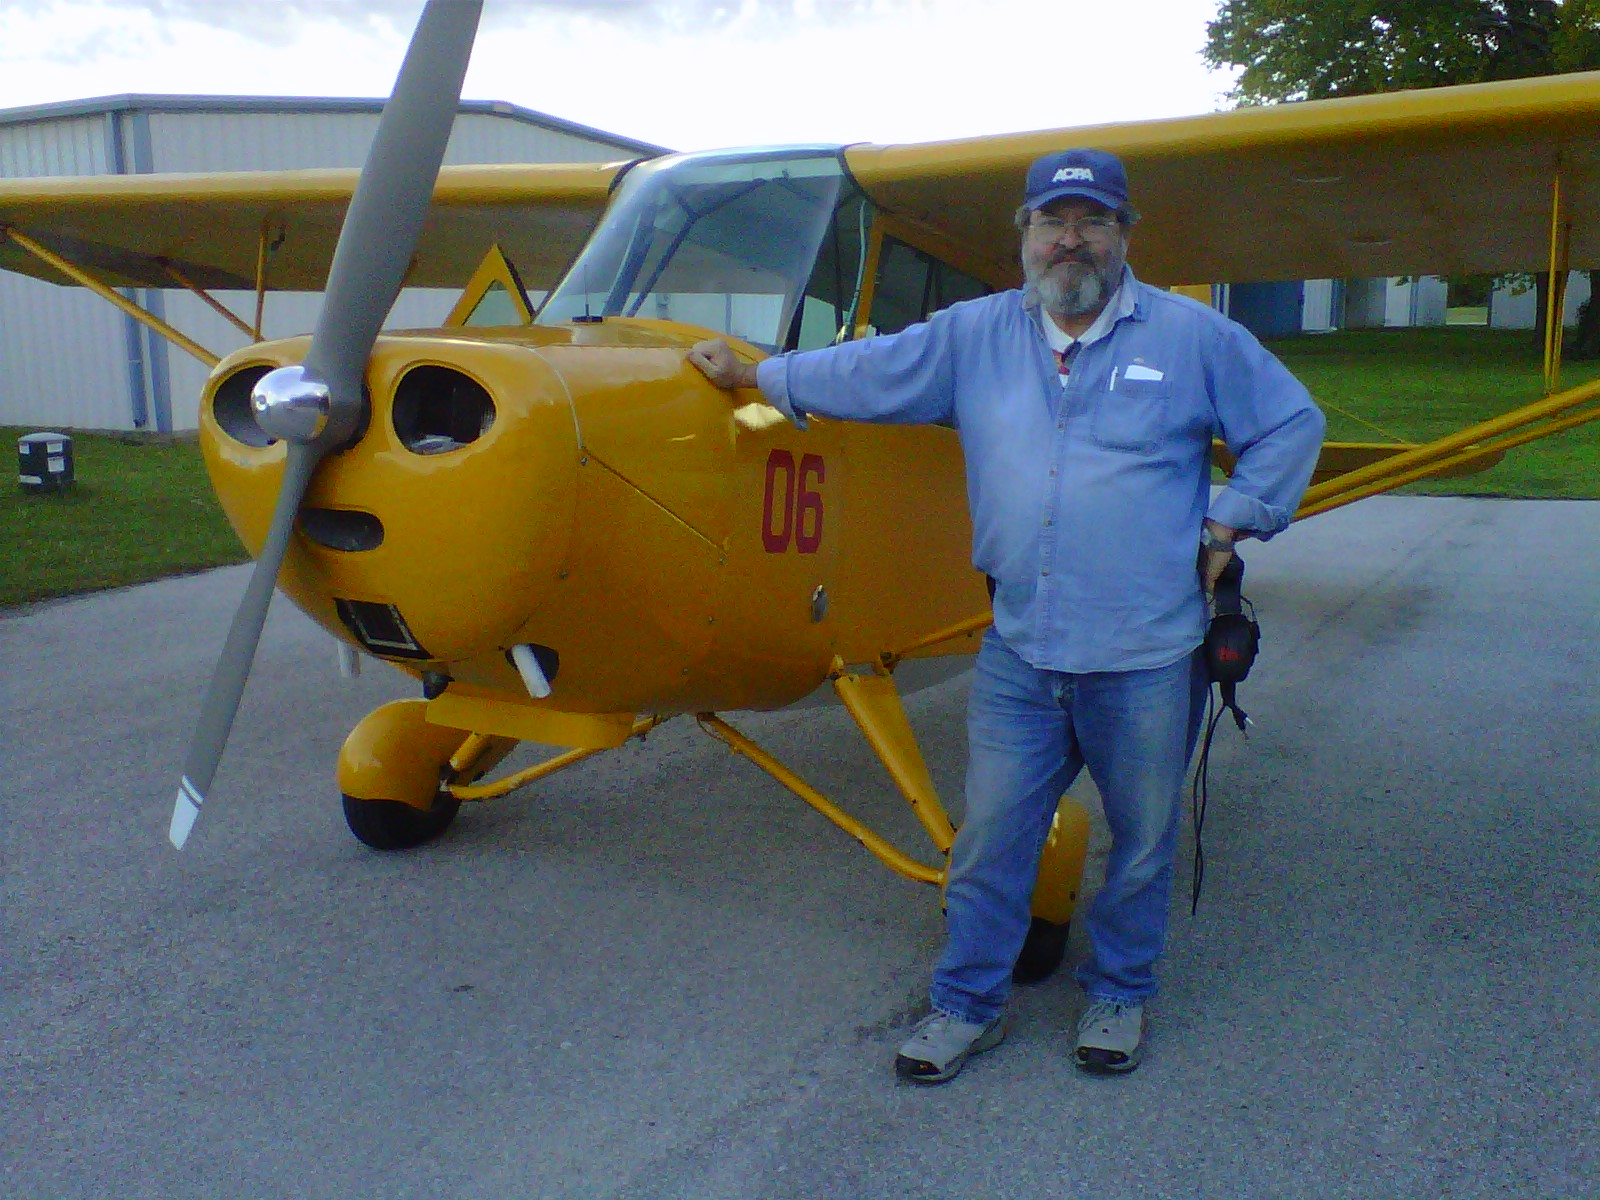 Rich Dugger: I'm no lady but I do fly a taildragger